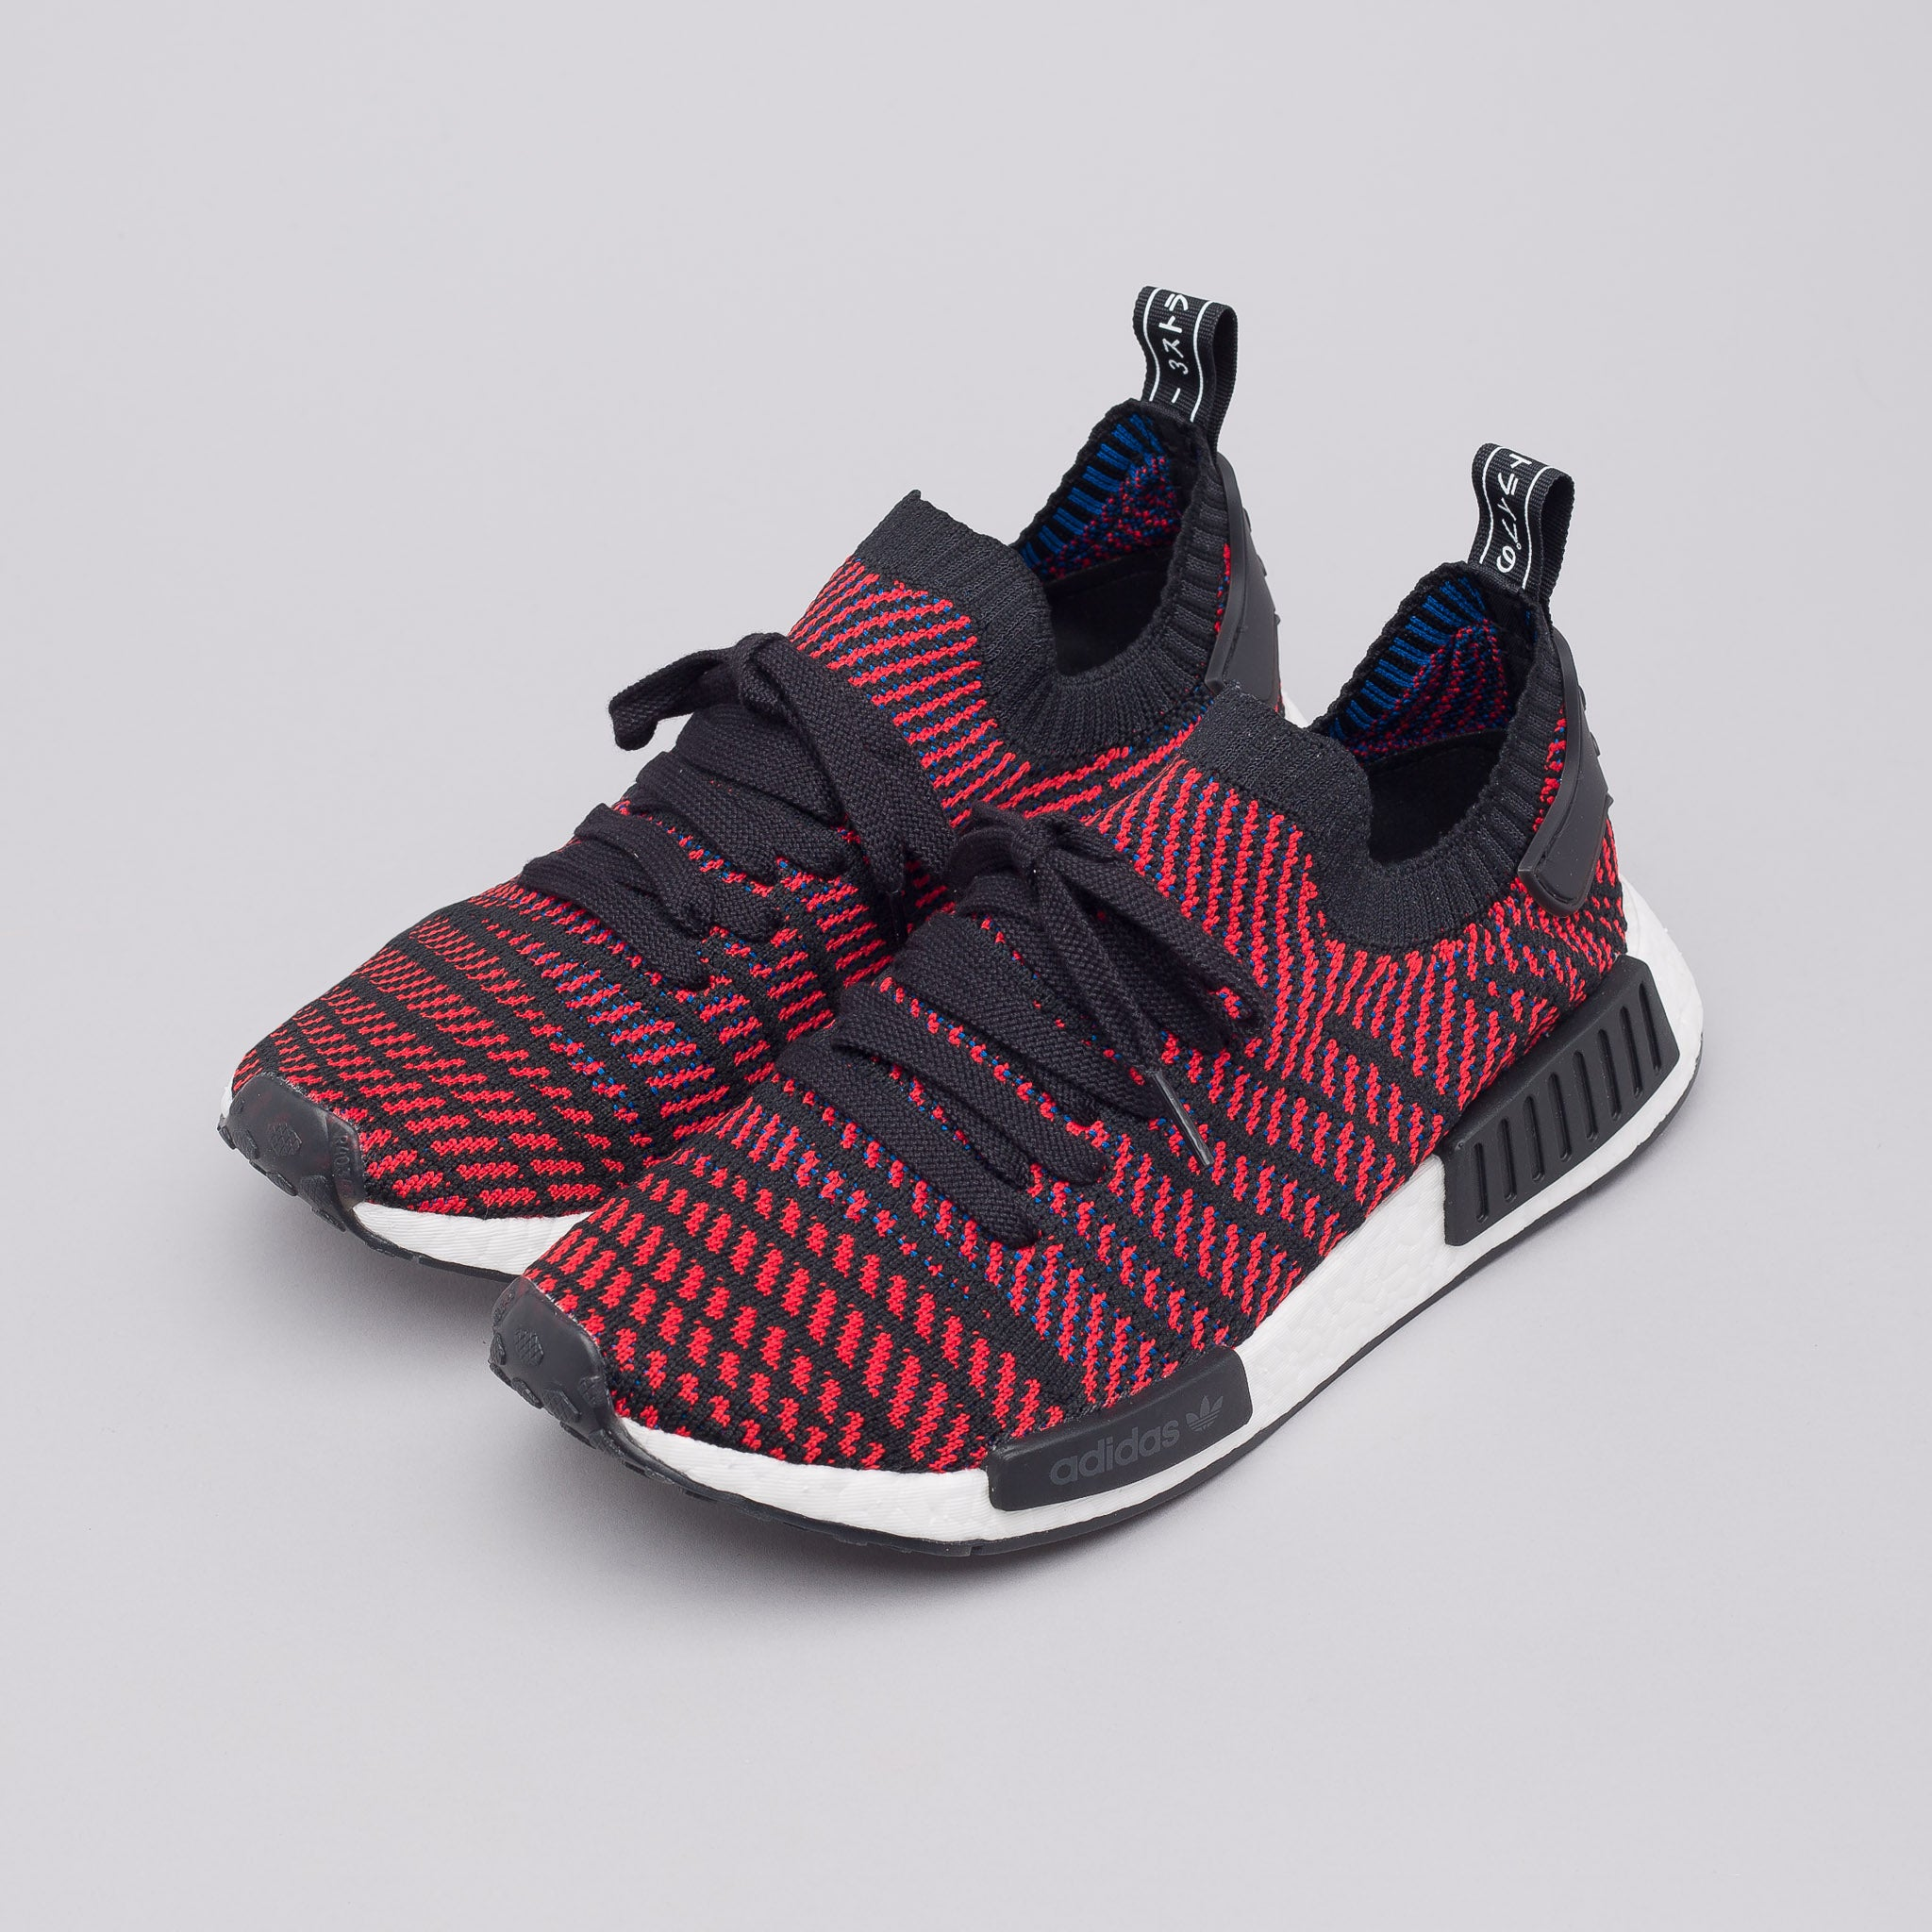 adidas Originals NMD R1 Men's Running Shoes Mystery Blue